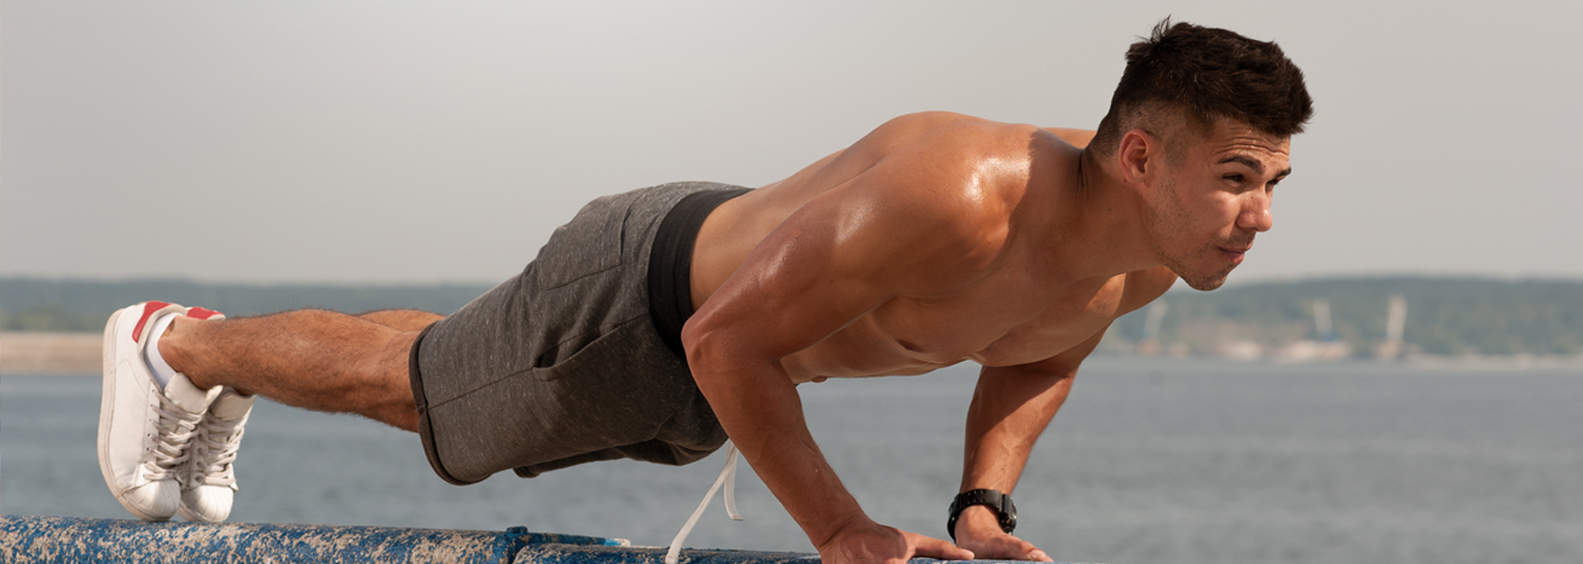 Work the Beach with a Full Body Beach Workout